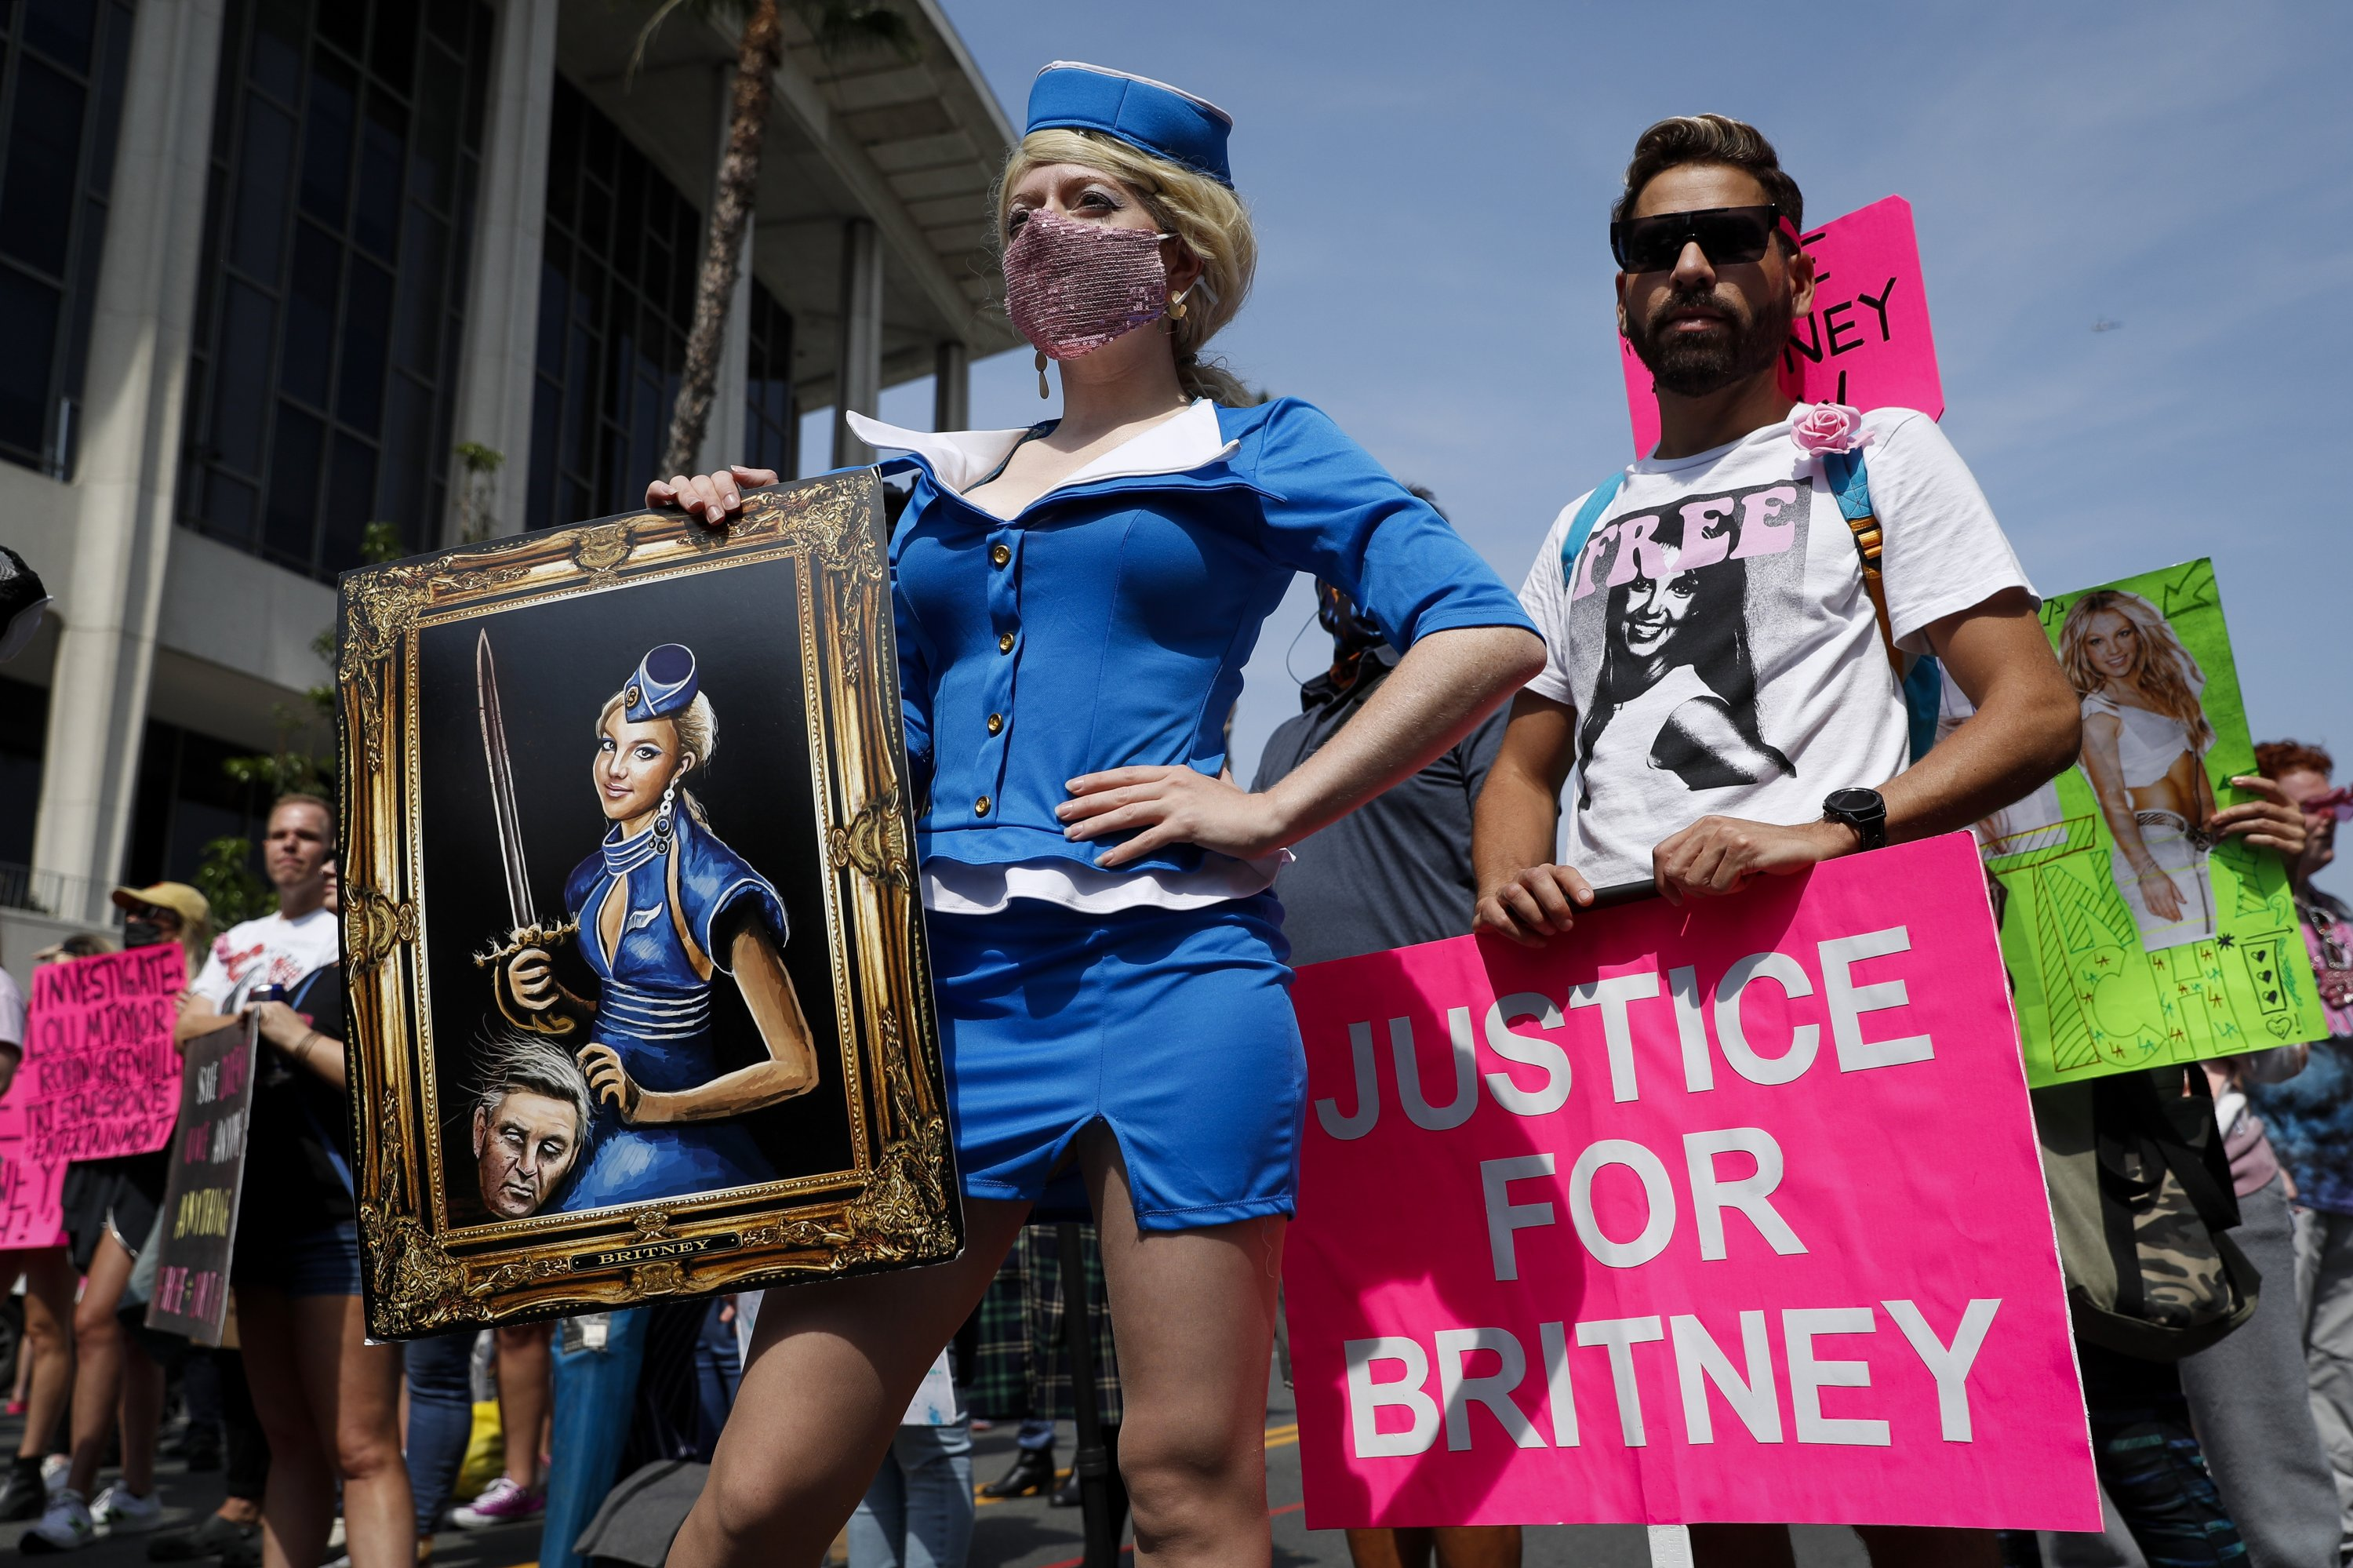 Britney Spears supporters attend a rally outside the Stanley Mosk Courthouse in Los Angeles, California, UsS., Sept. 29, 2021. (EPA Photo)